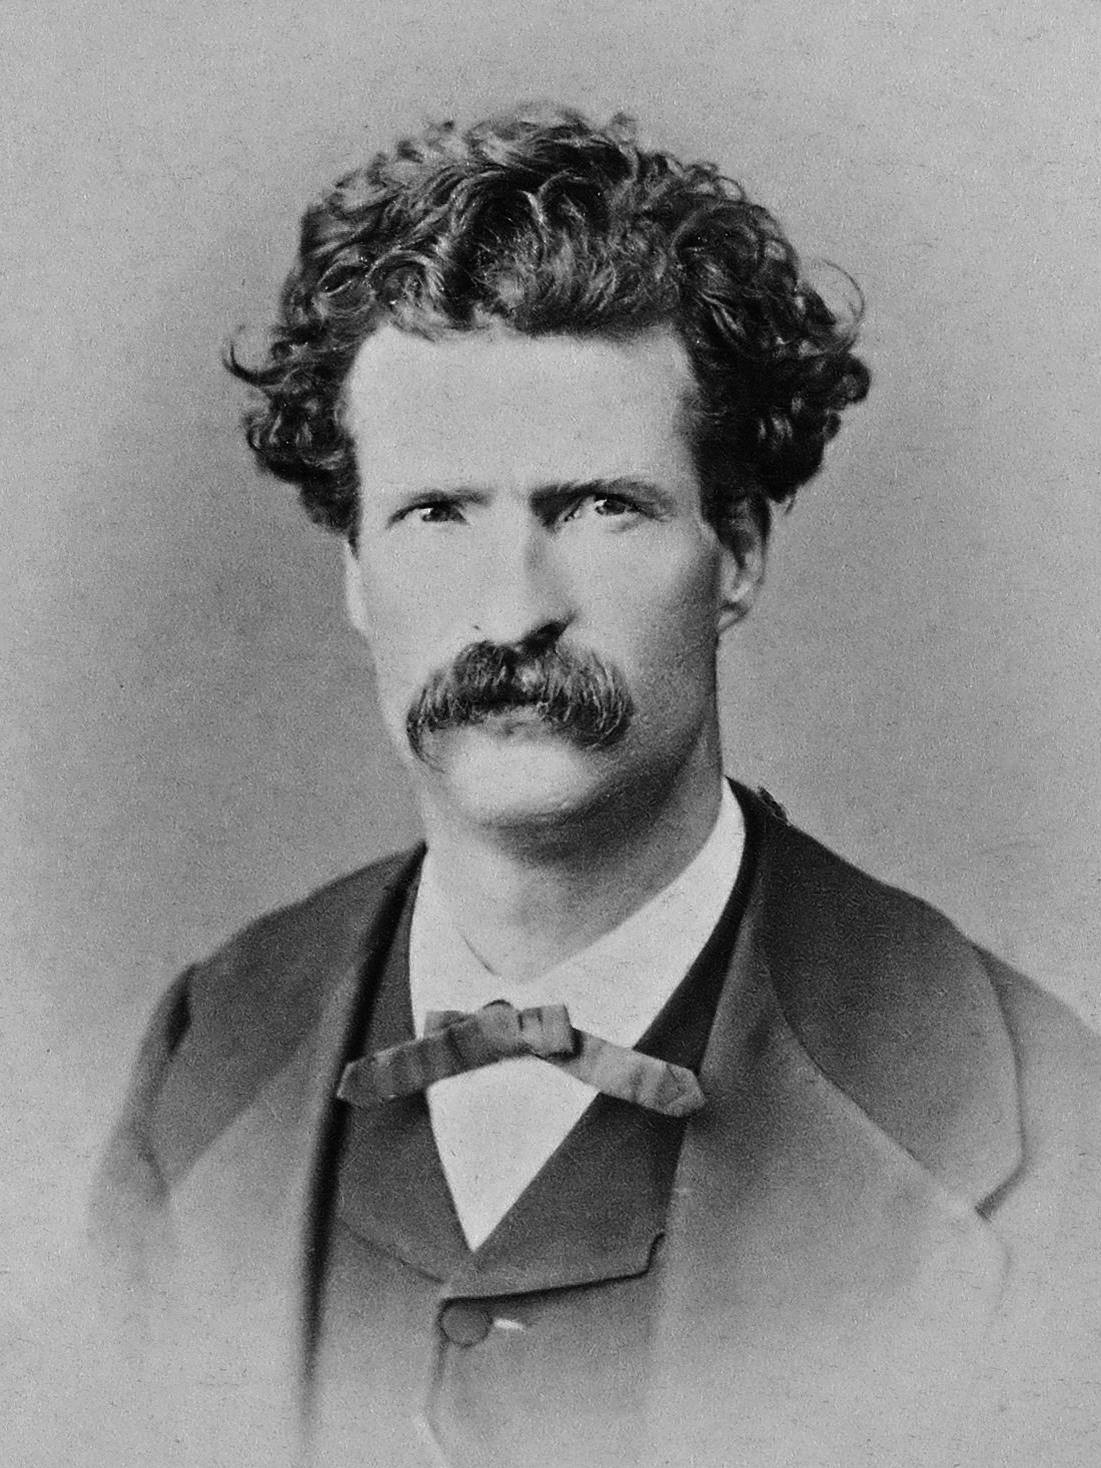 http://upload.wikimedia.org/wikipedia/commons/2/2d/Mark_Twain_by_Abdullah_Fr%C3%A8res%2C_1867.jpg